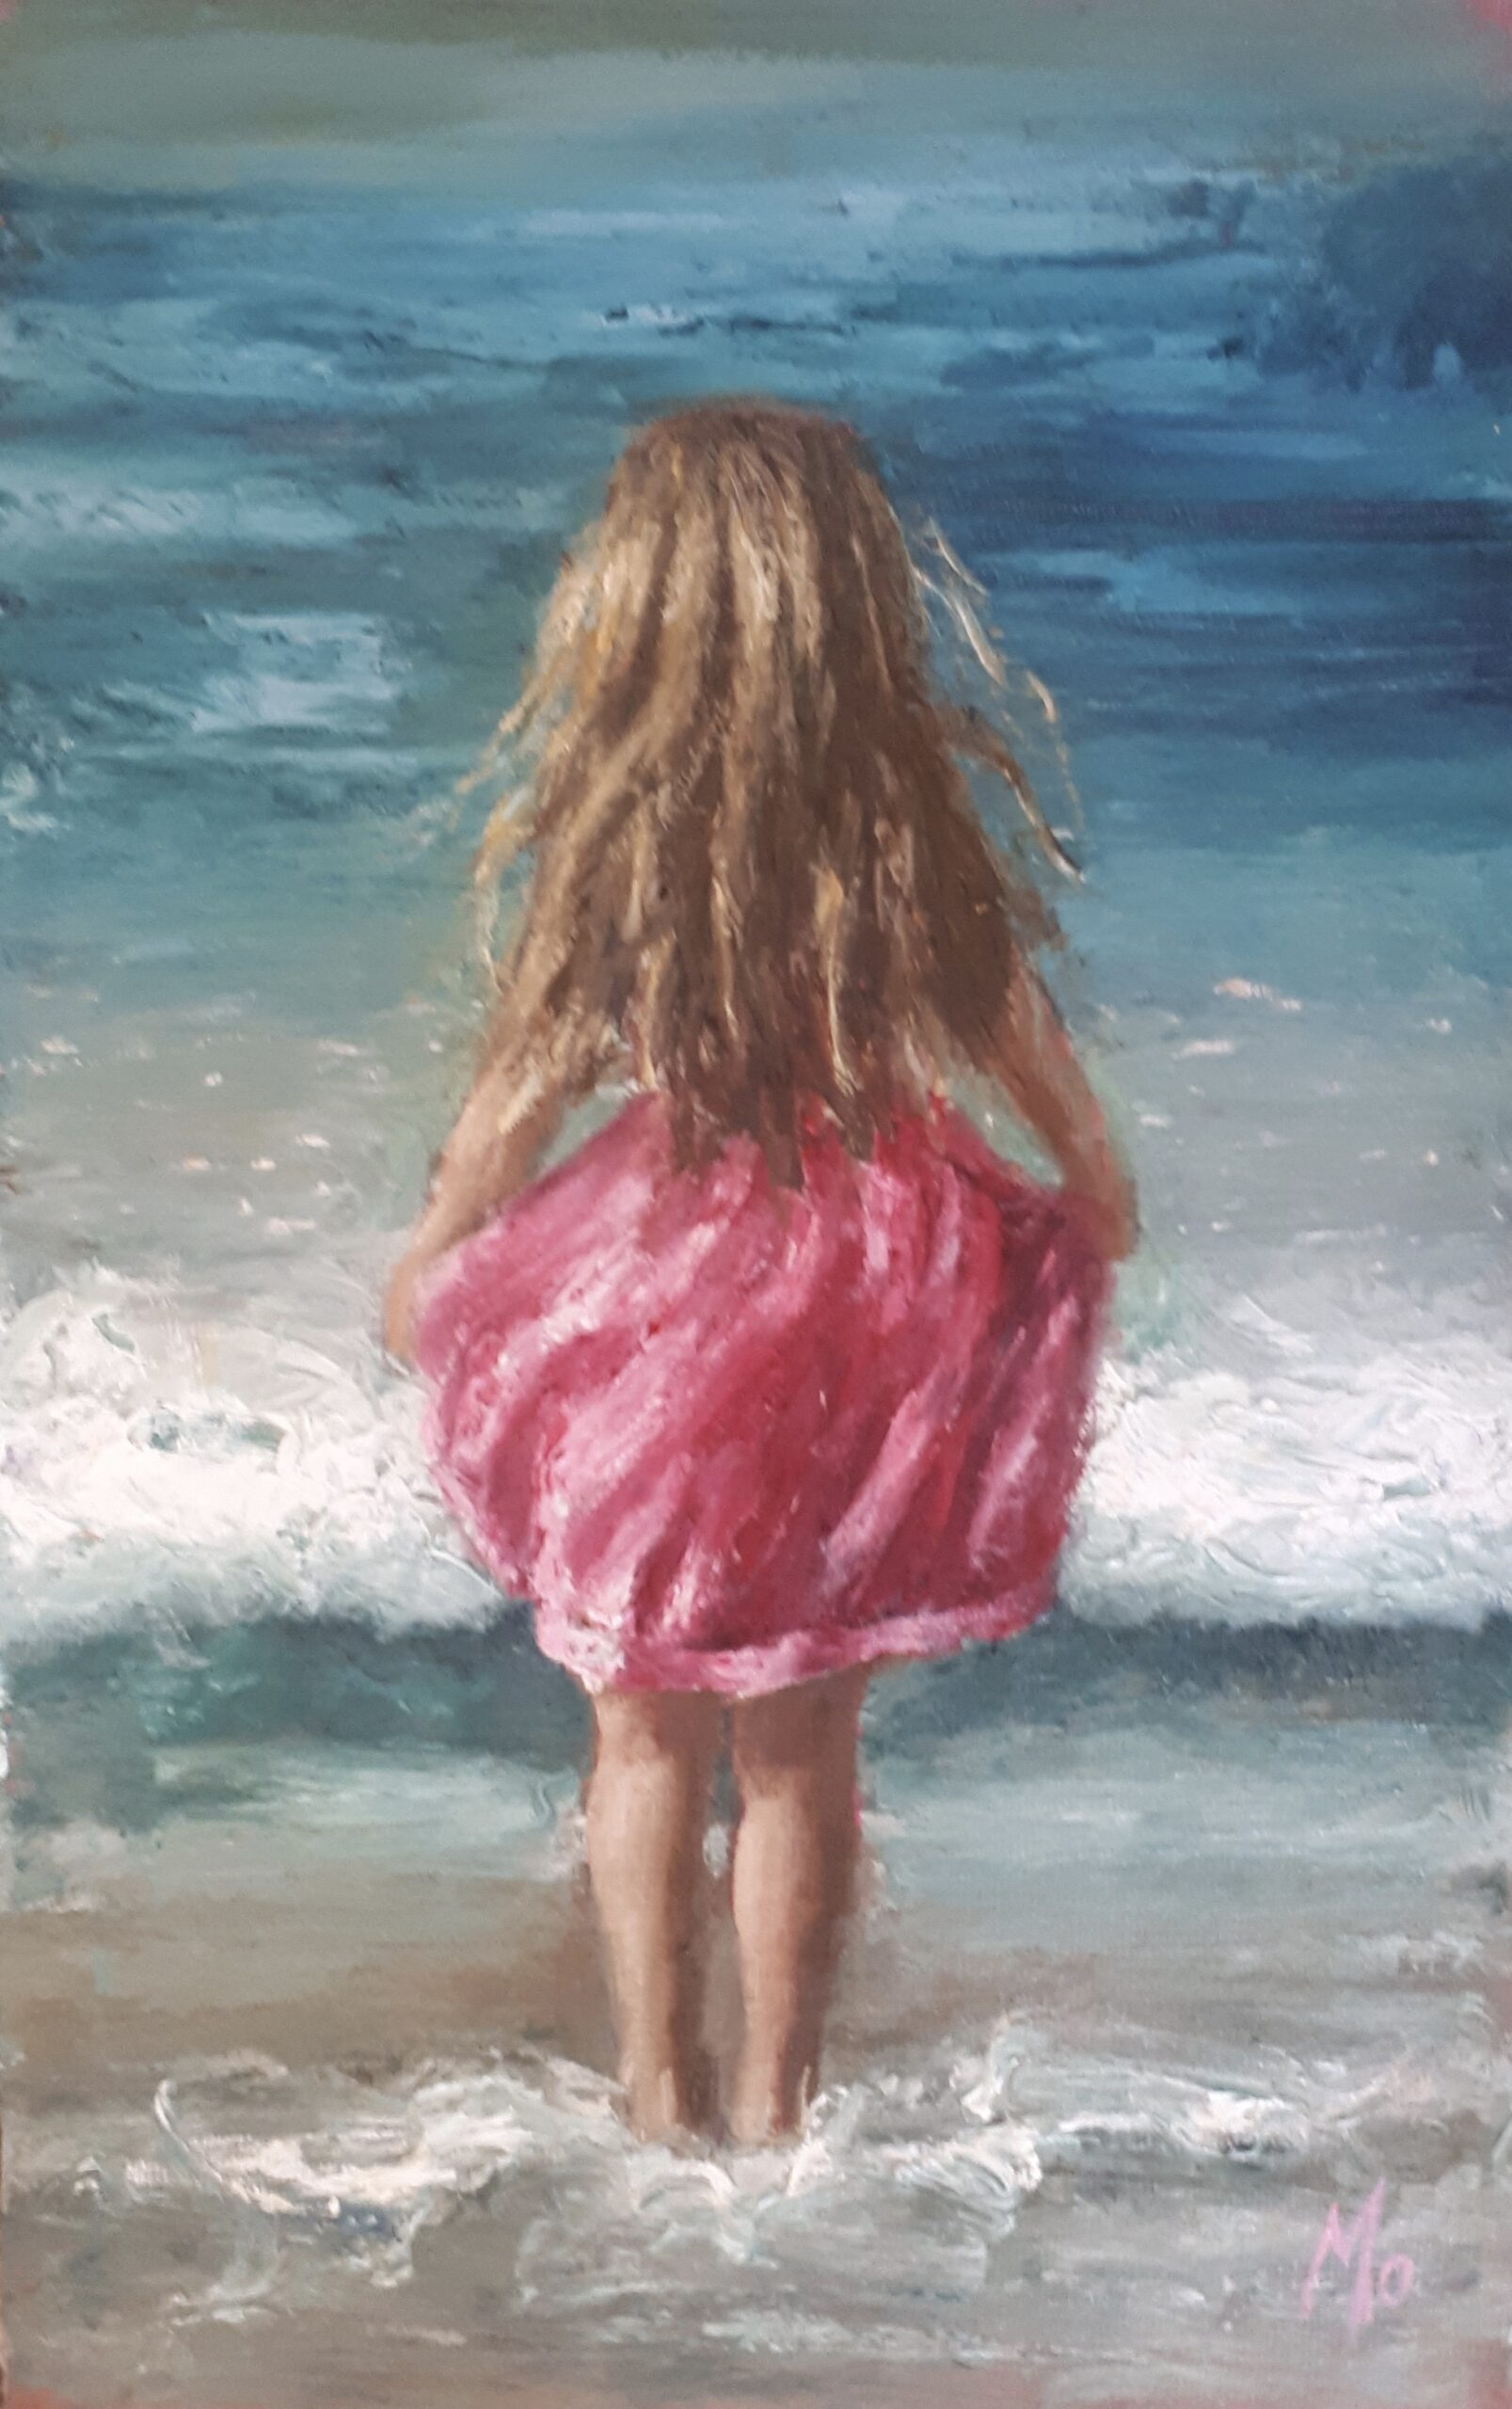 girl in water with pink dress